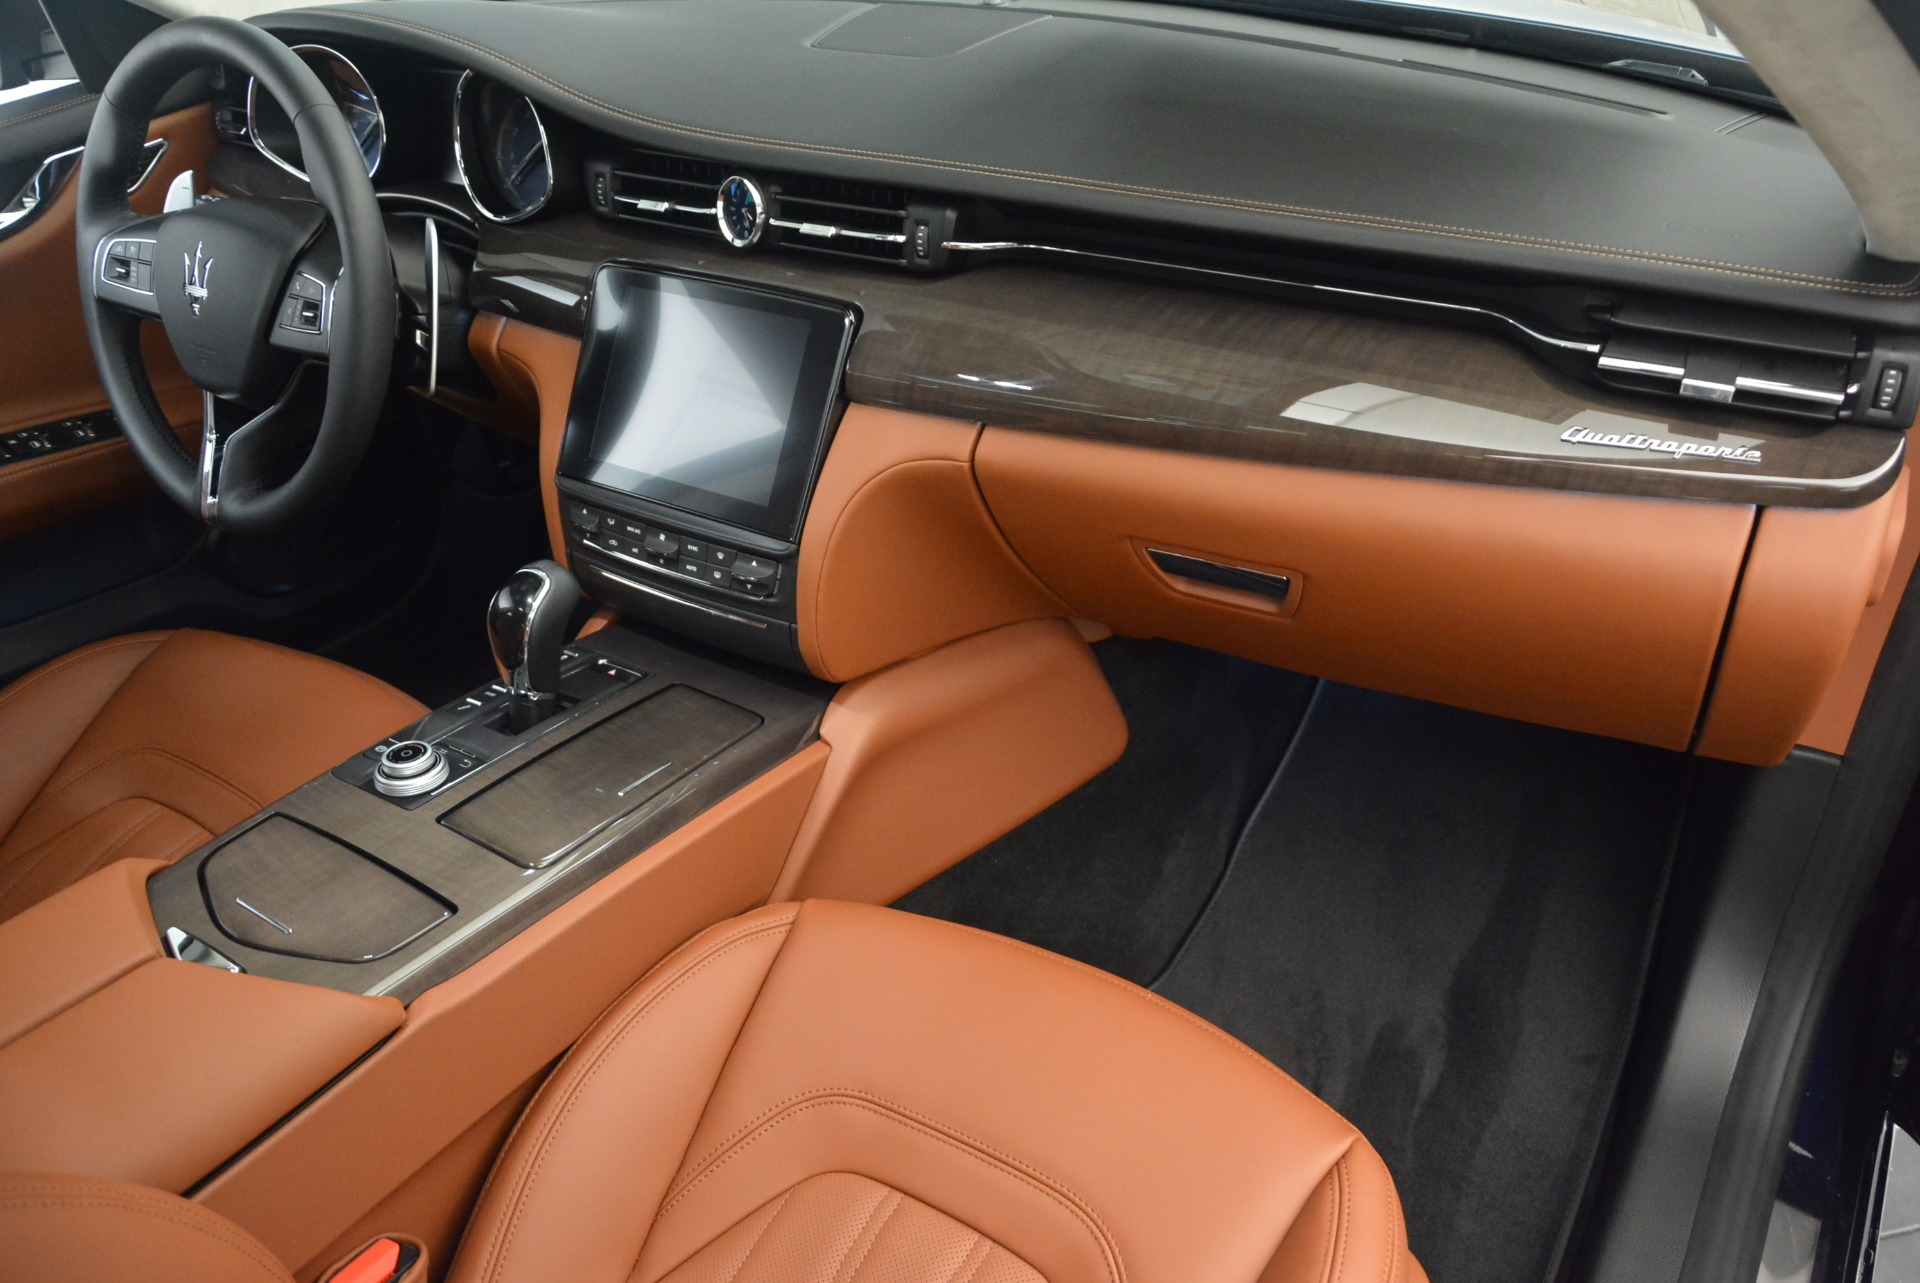 New 2018 Maserati Quattroporte S Q4 GranLusso For Sale In Greenwich, CT 1700_p15